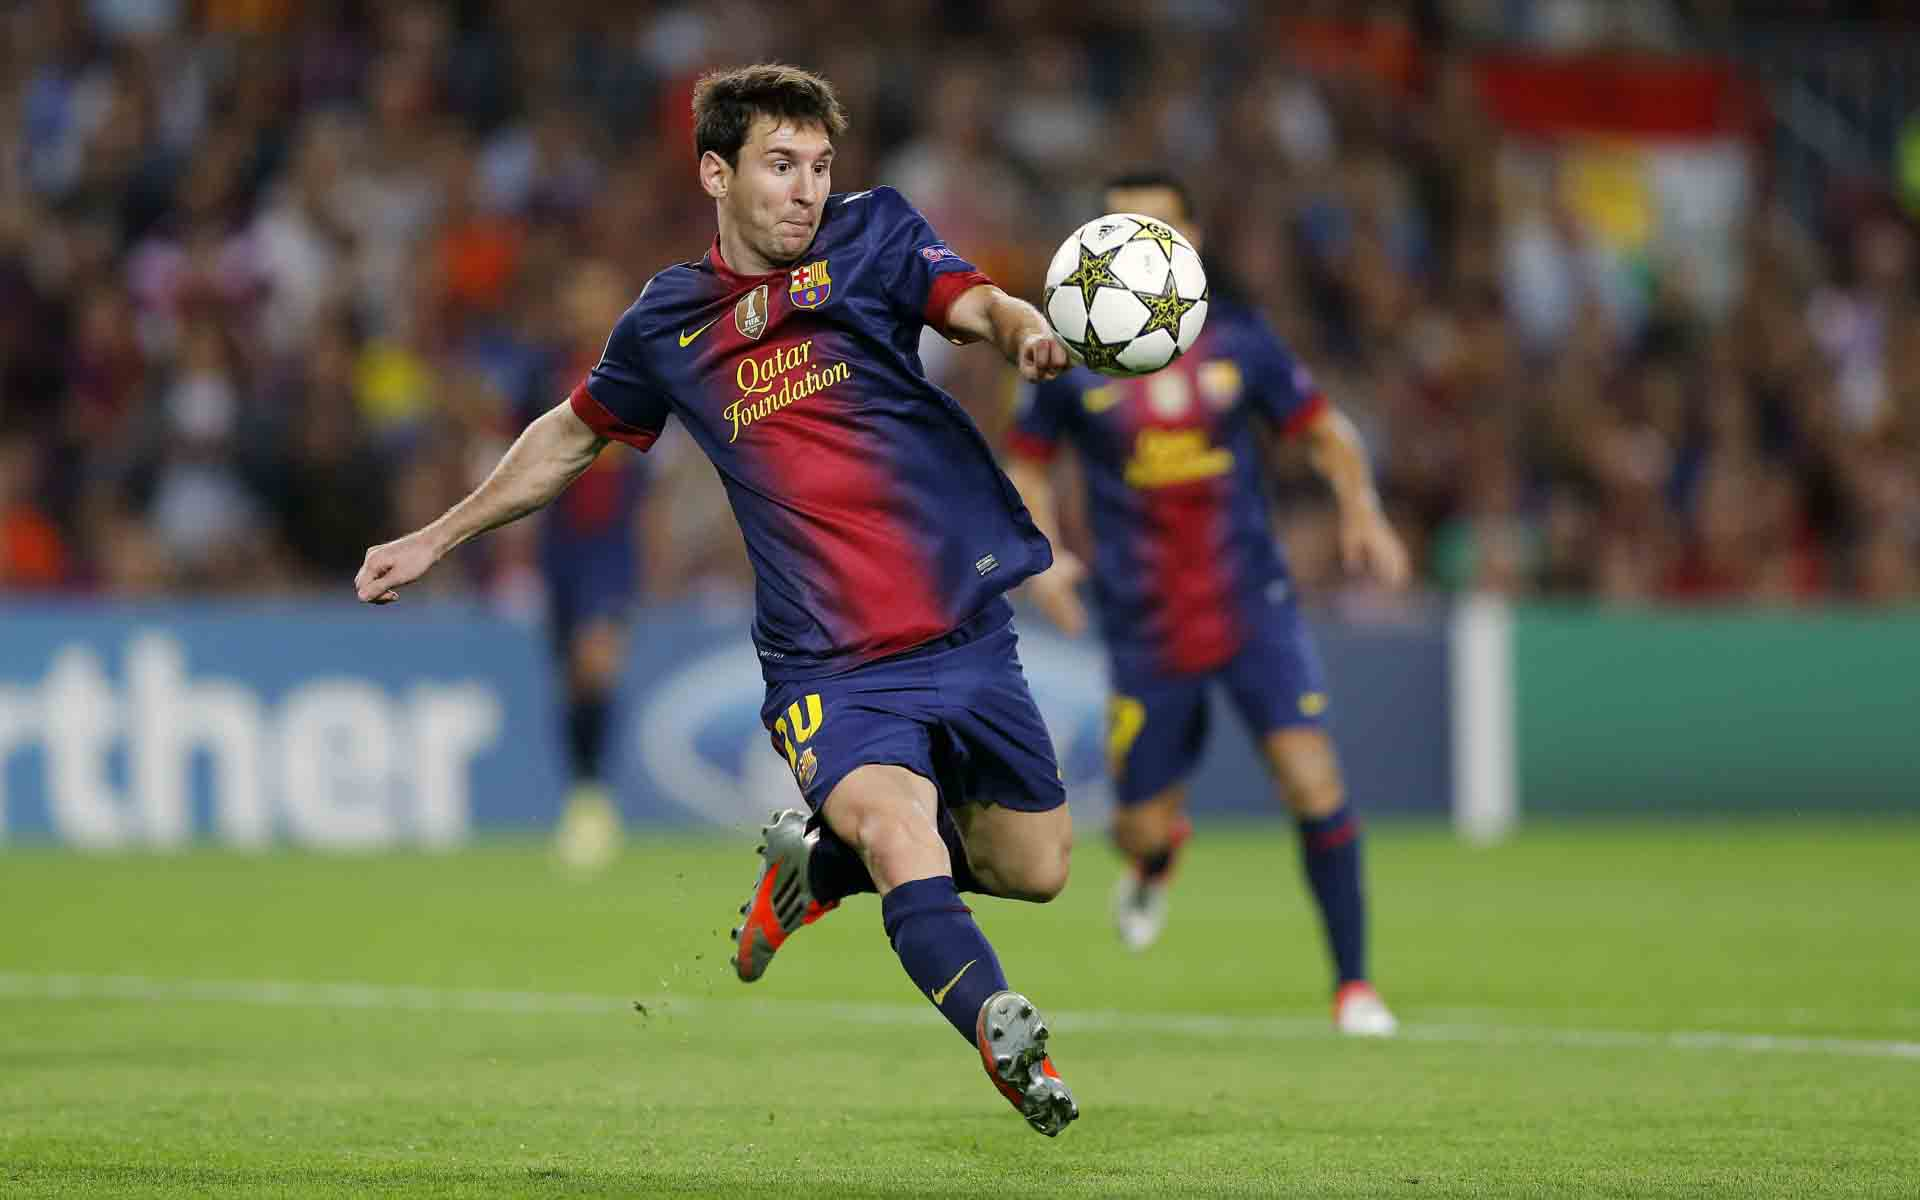 Lionel Messi Wallpapers, Pictures, Images